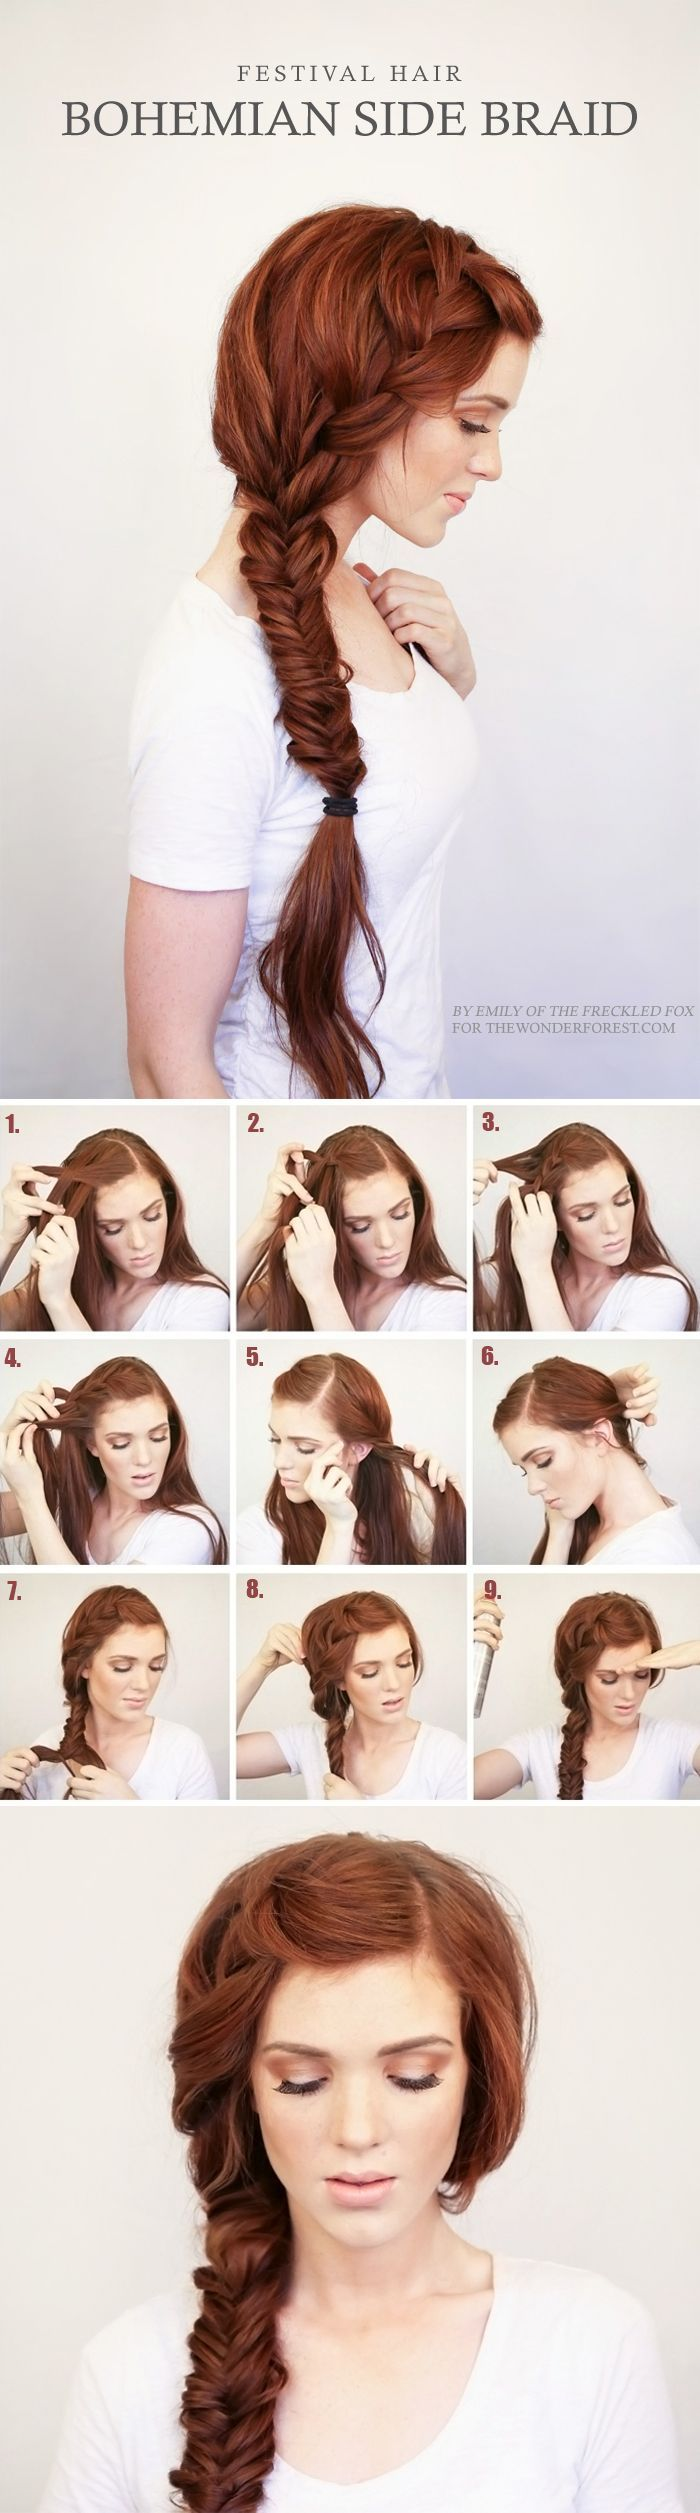 10 Best DIY Wedding Hairstyles with Tutorials | TulleandChantilly.com